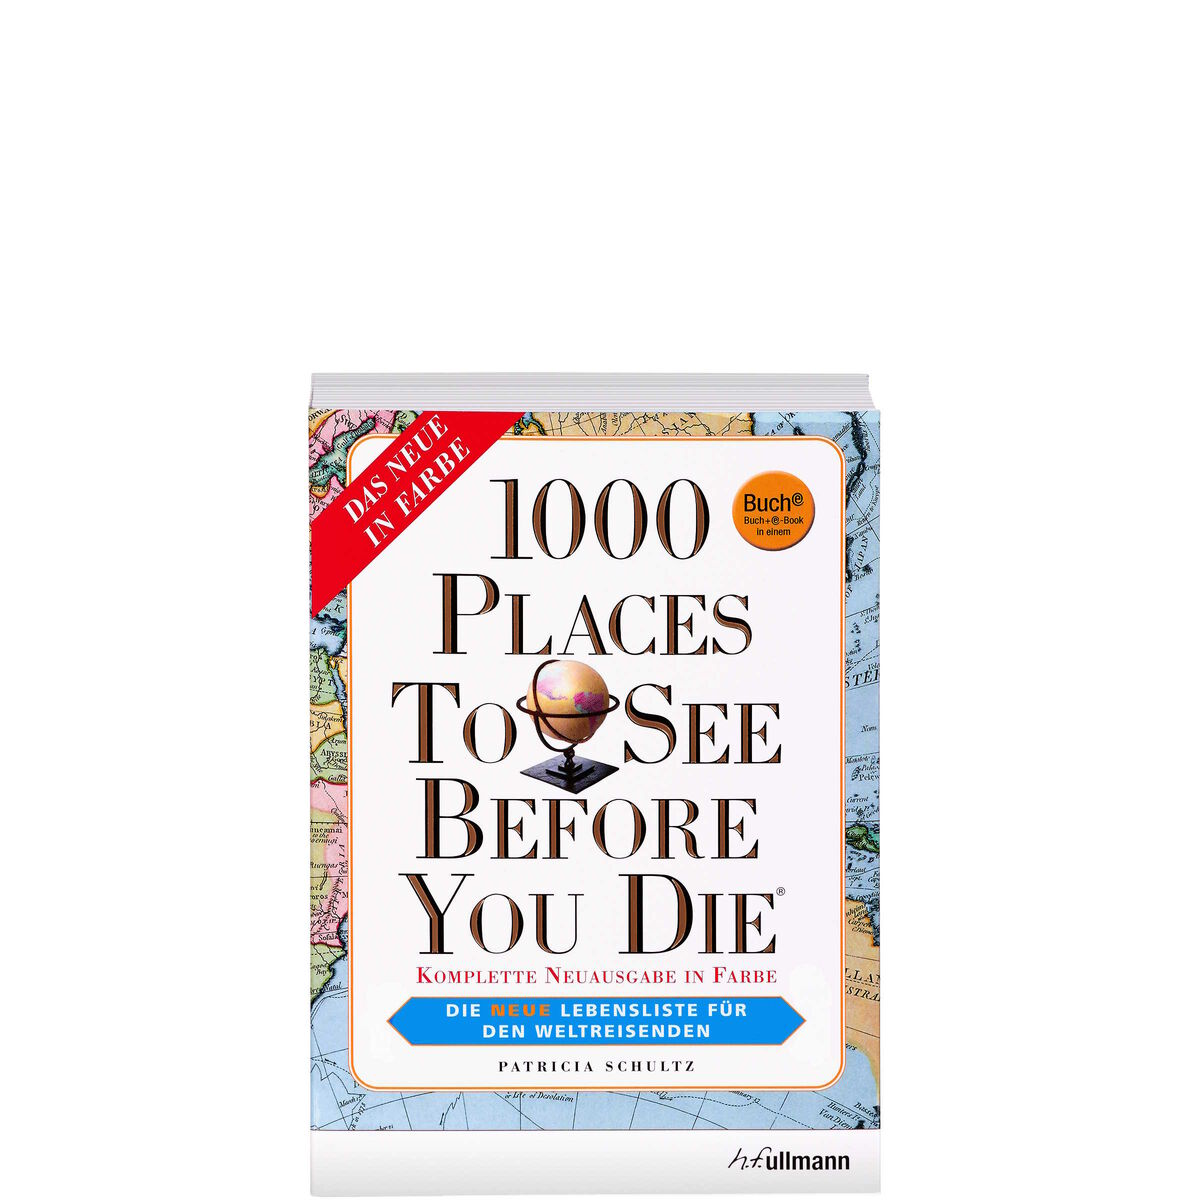 BOOK 1000 Places to see before you die 2